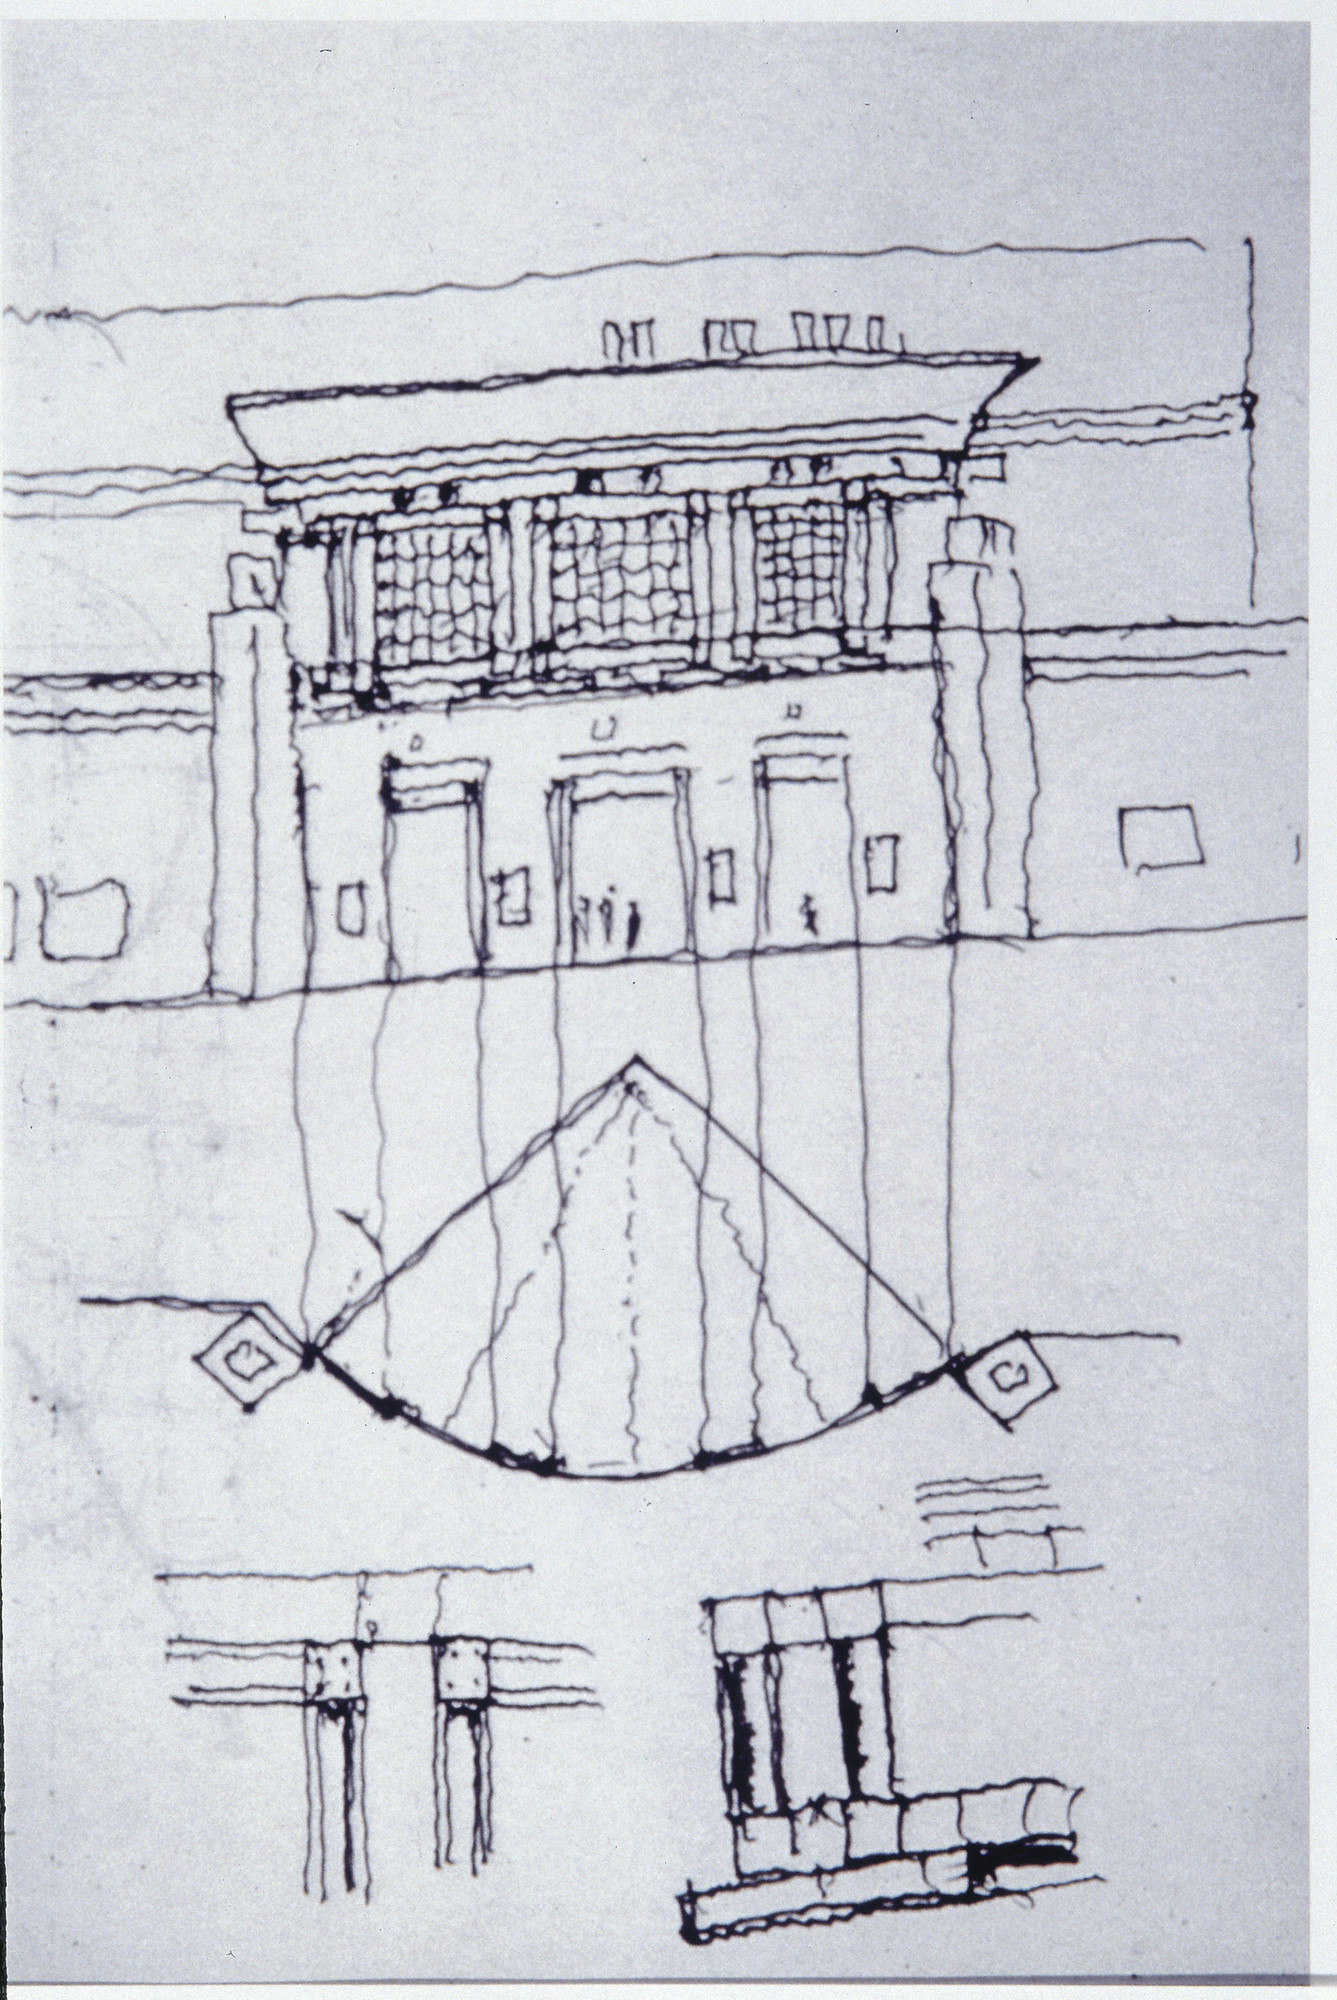 Sketch of the U.S. Holocaust Memorial Museum building by the museum's architect, James Ingo Freed.